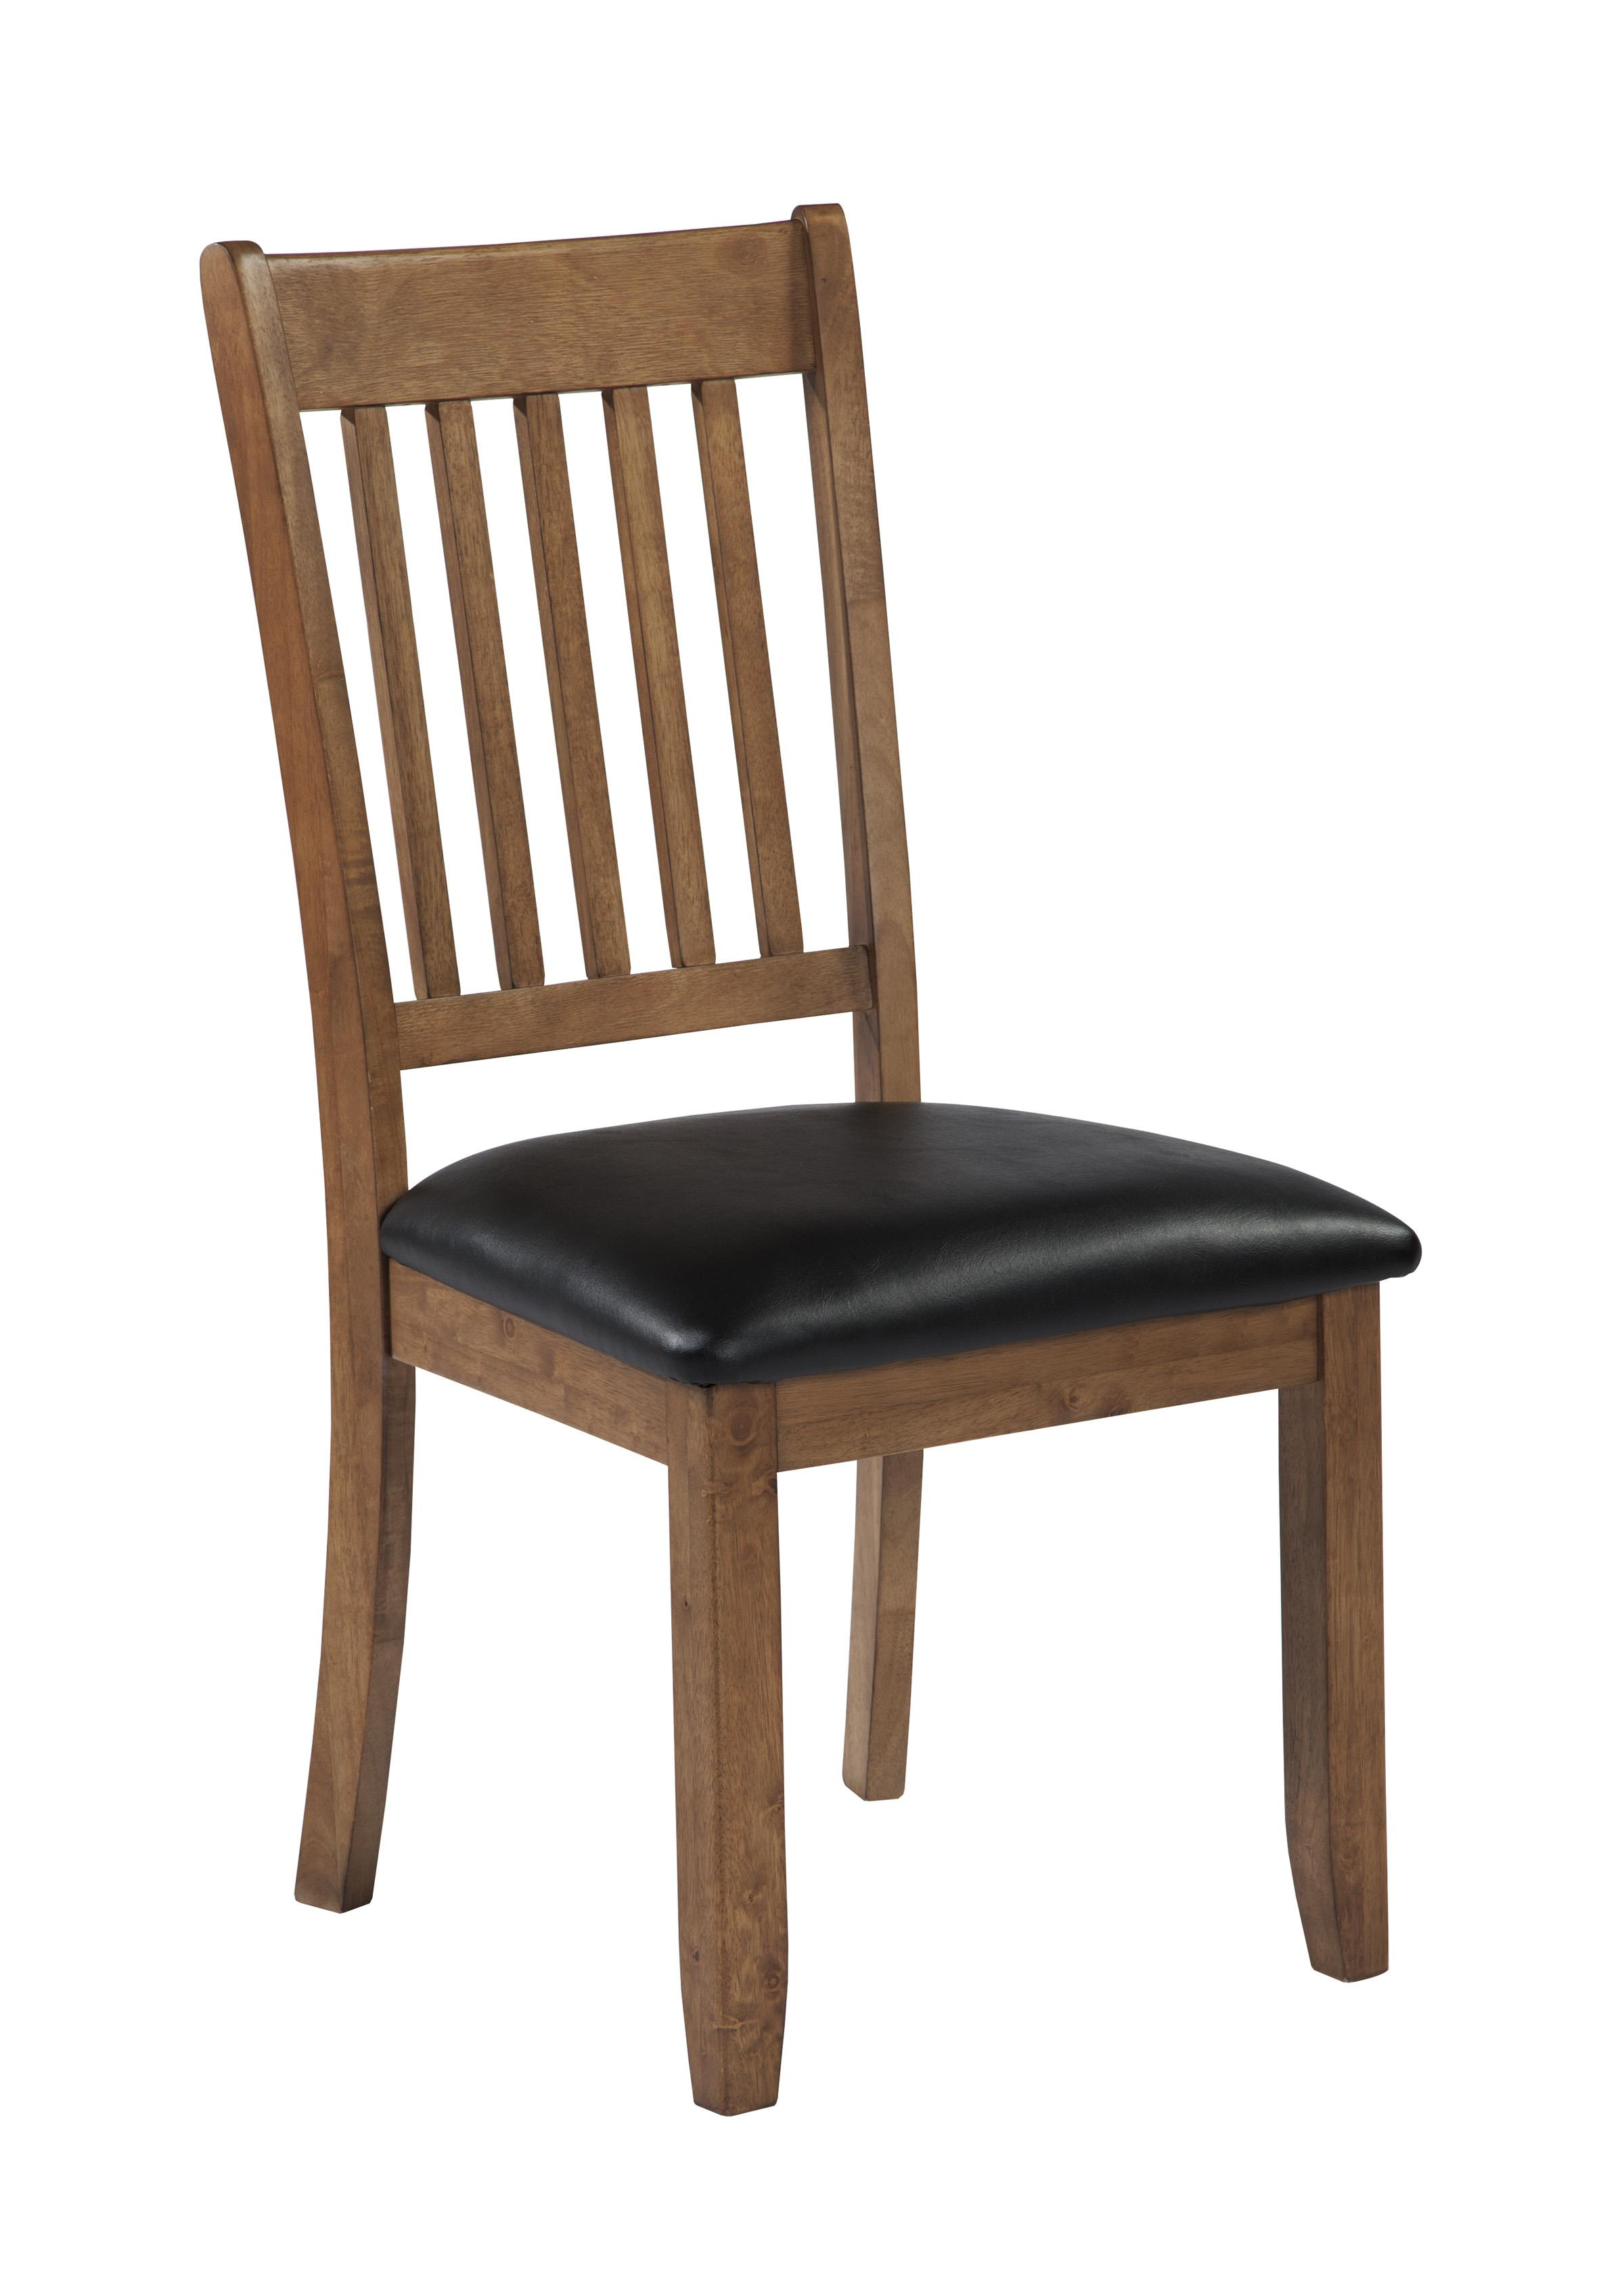 Signature Design by Ashley Joveen Dining Upholstered Side Chair - Item Number: D278-01